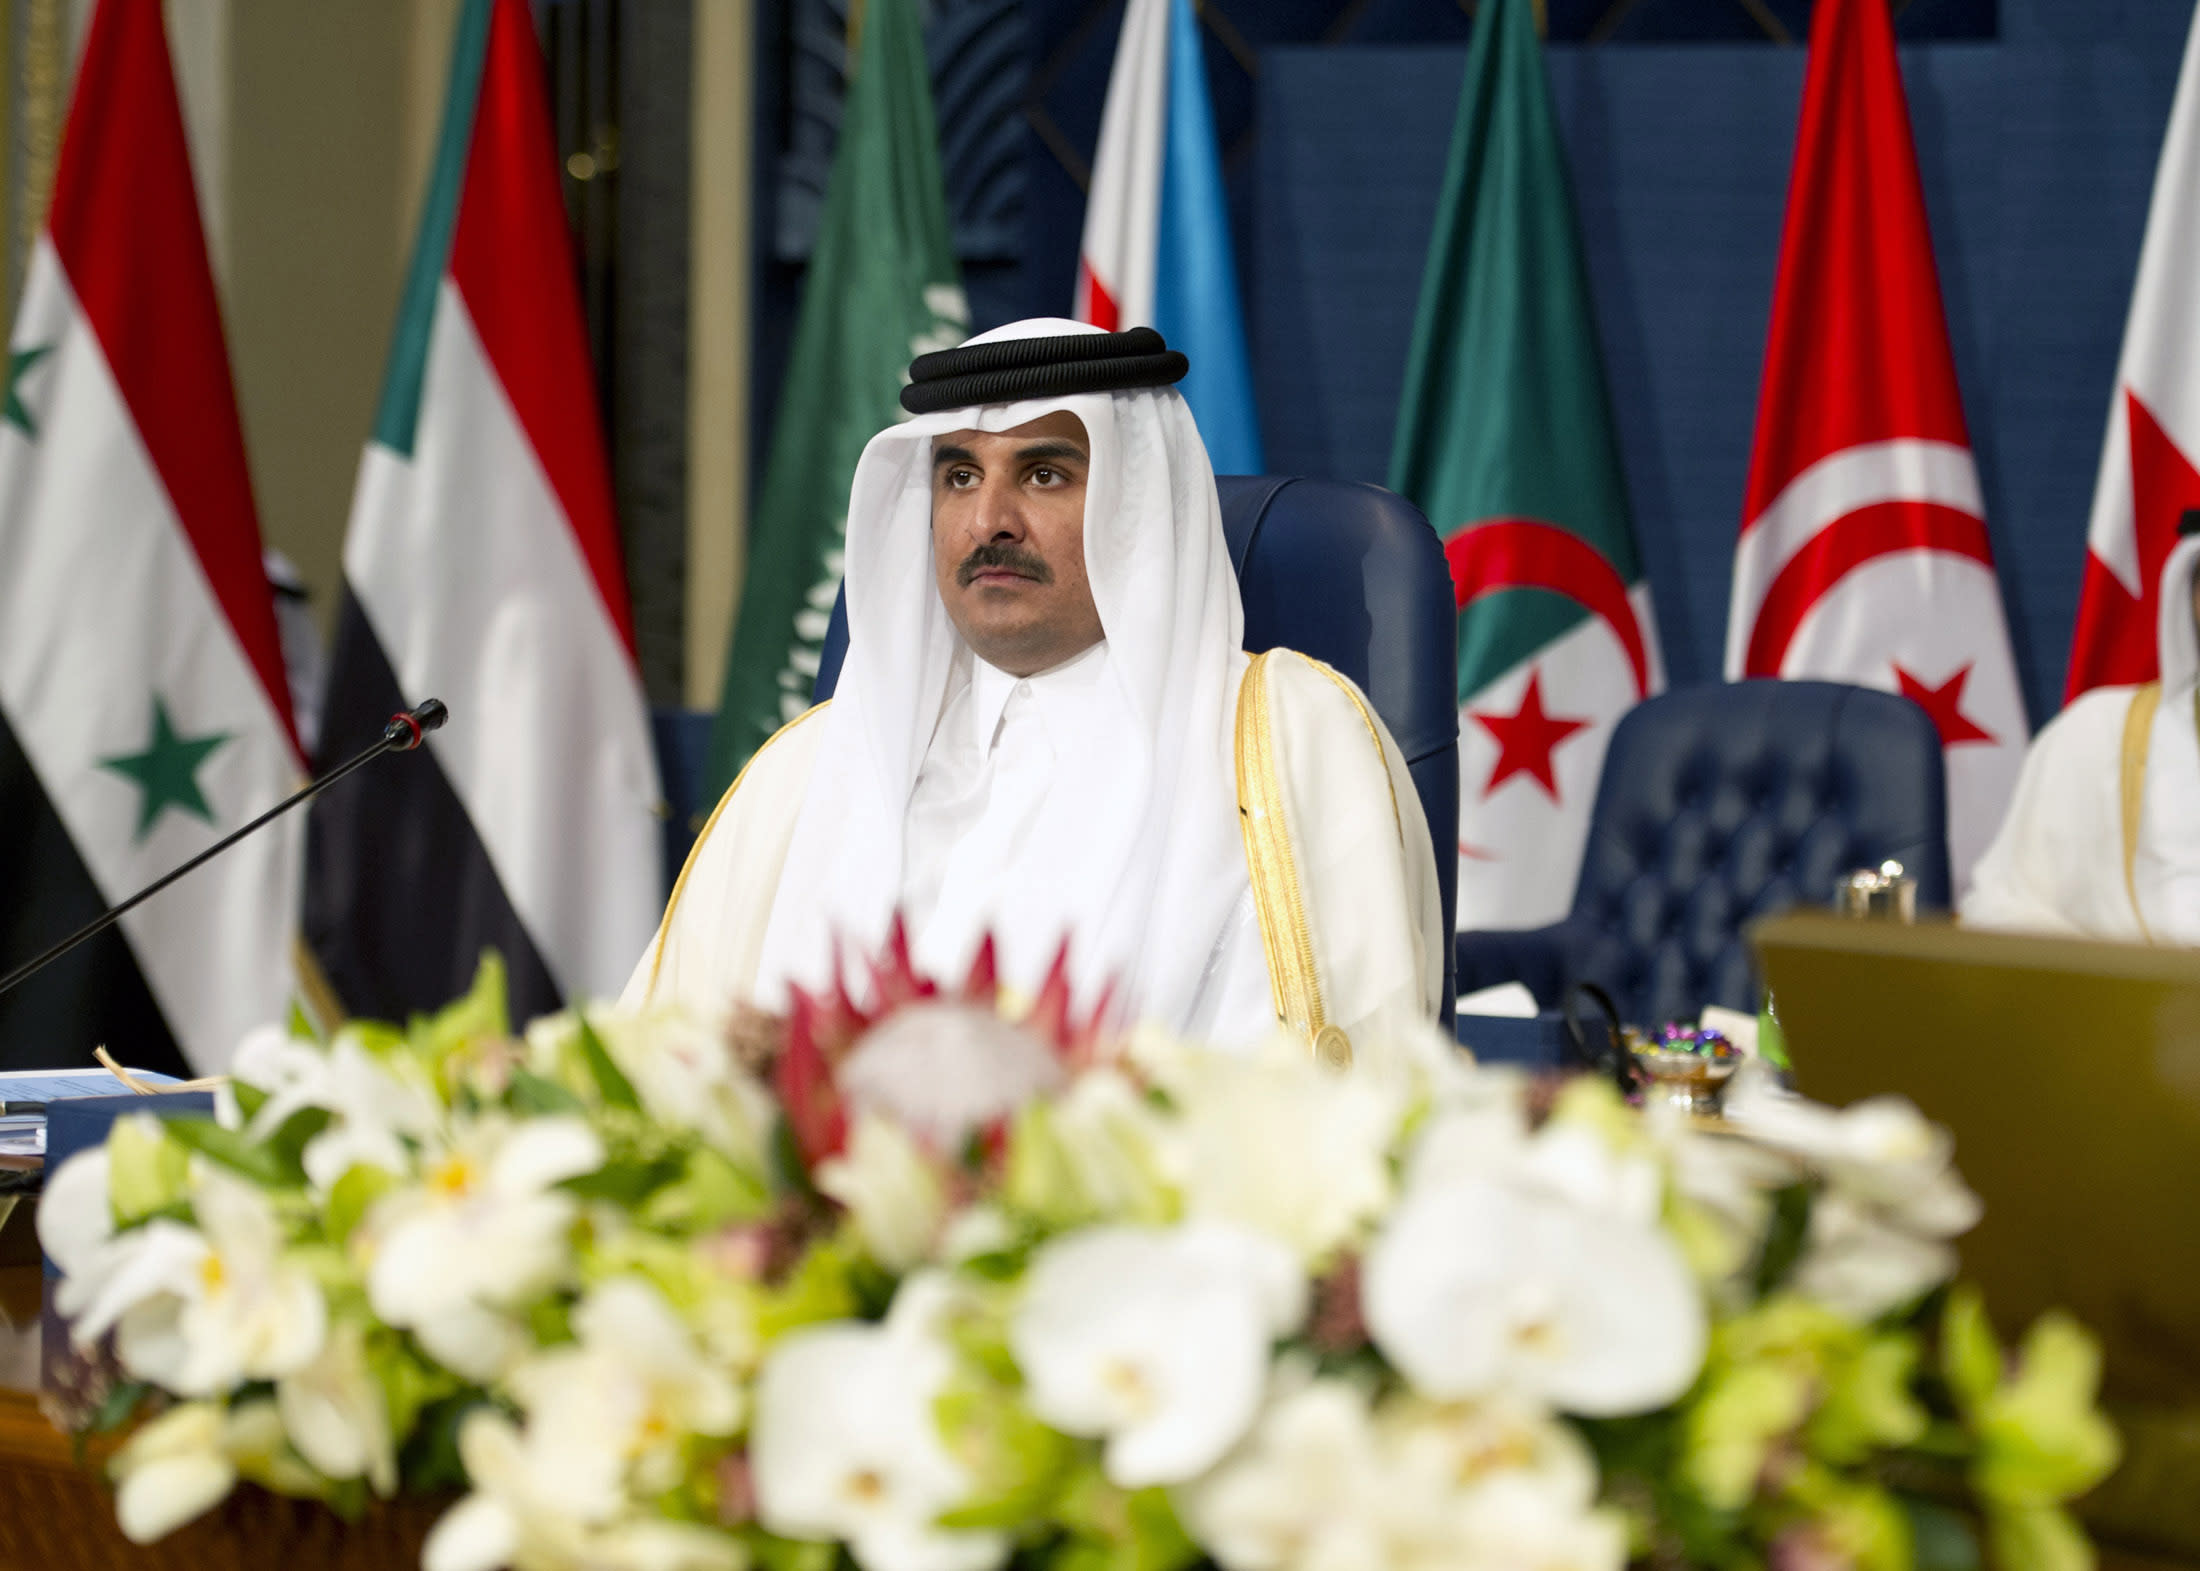 """In an interview with CNN on September 26, Qatar's Emir Sheikh Tamim insisted that laws for migrant workers have been changed, saying """"they are enforced and there are many laws that have been changed"""" (AFP Photo/Yasser al-Zayyat)"""